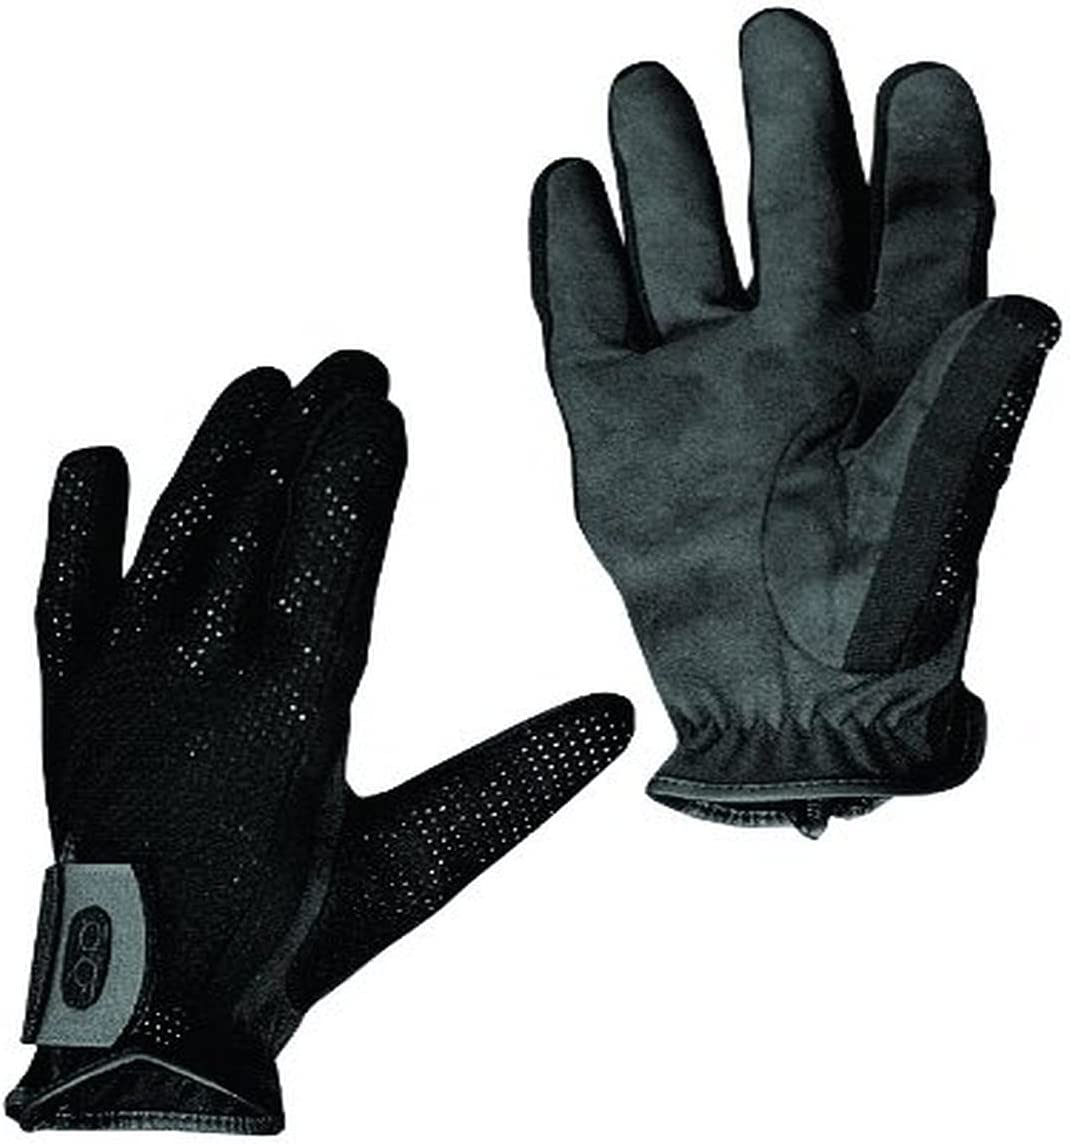 Popular shop is the lowest price challenge Bob Max 72% OFF Allen Shooting Gloves